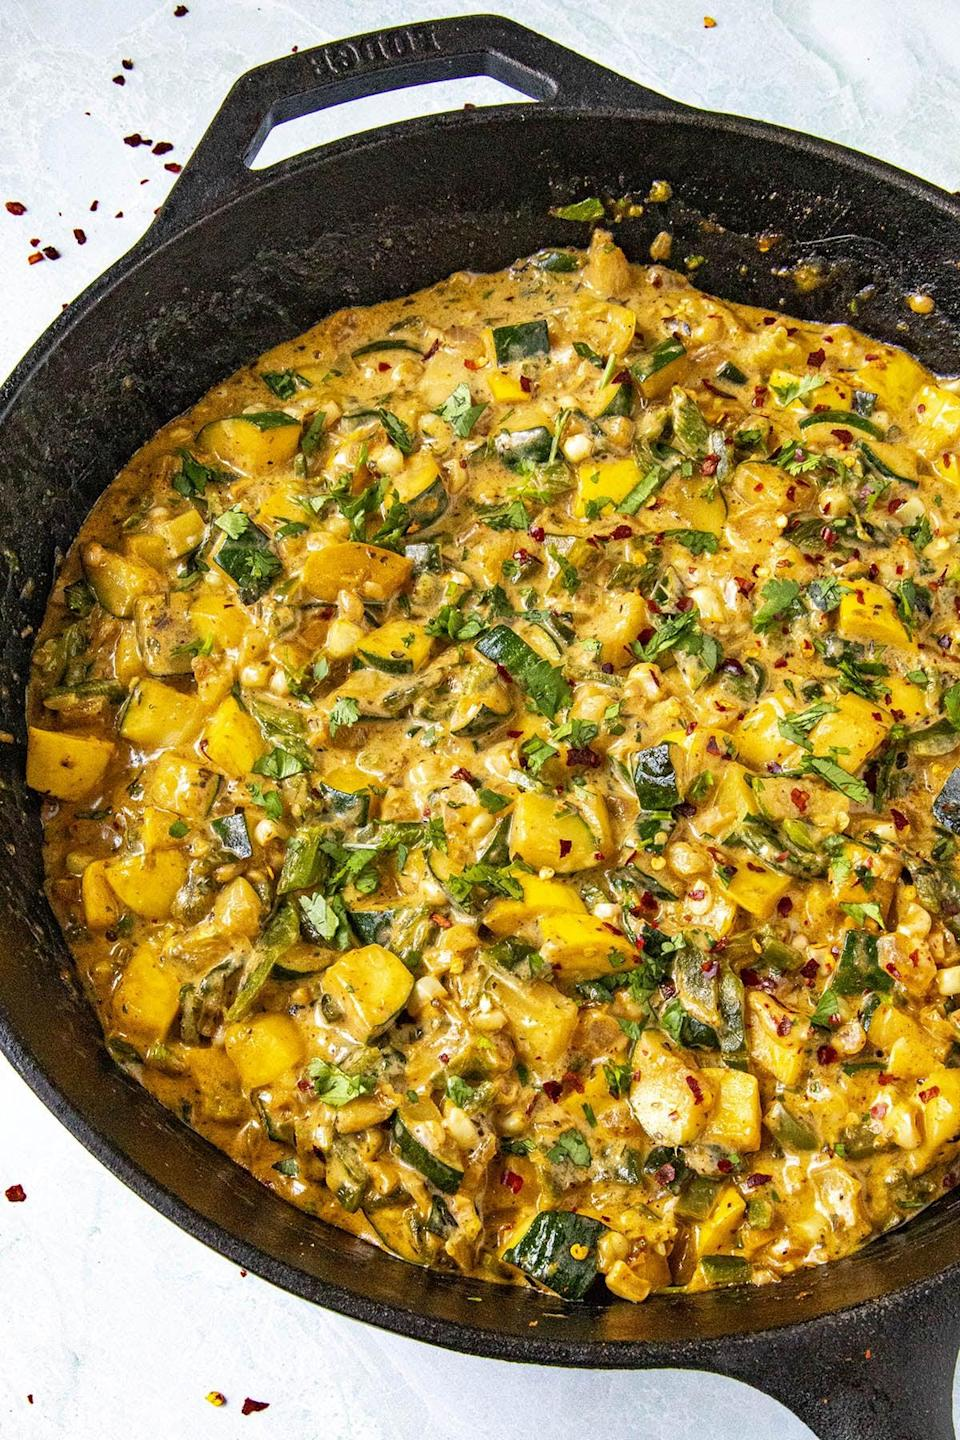 "<p>Looking for something filled with flavor? This calabacitas recipe has all that and more. It's made with sautéed zucchini, roasted peppers, onions, and cheese, so you'll be drooling before it's even done cooking.</p> <p><strong>Get the recipe</strong>: <a href=""https://www.chilipeppermadness.com/recipes/calabacitas/"" class=""link rapid-noclick-resp"" rel=""nofollow noopener"" target=""_blank"" data-ylk=""slk:calabacitas"">calabacitas</a></p>"